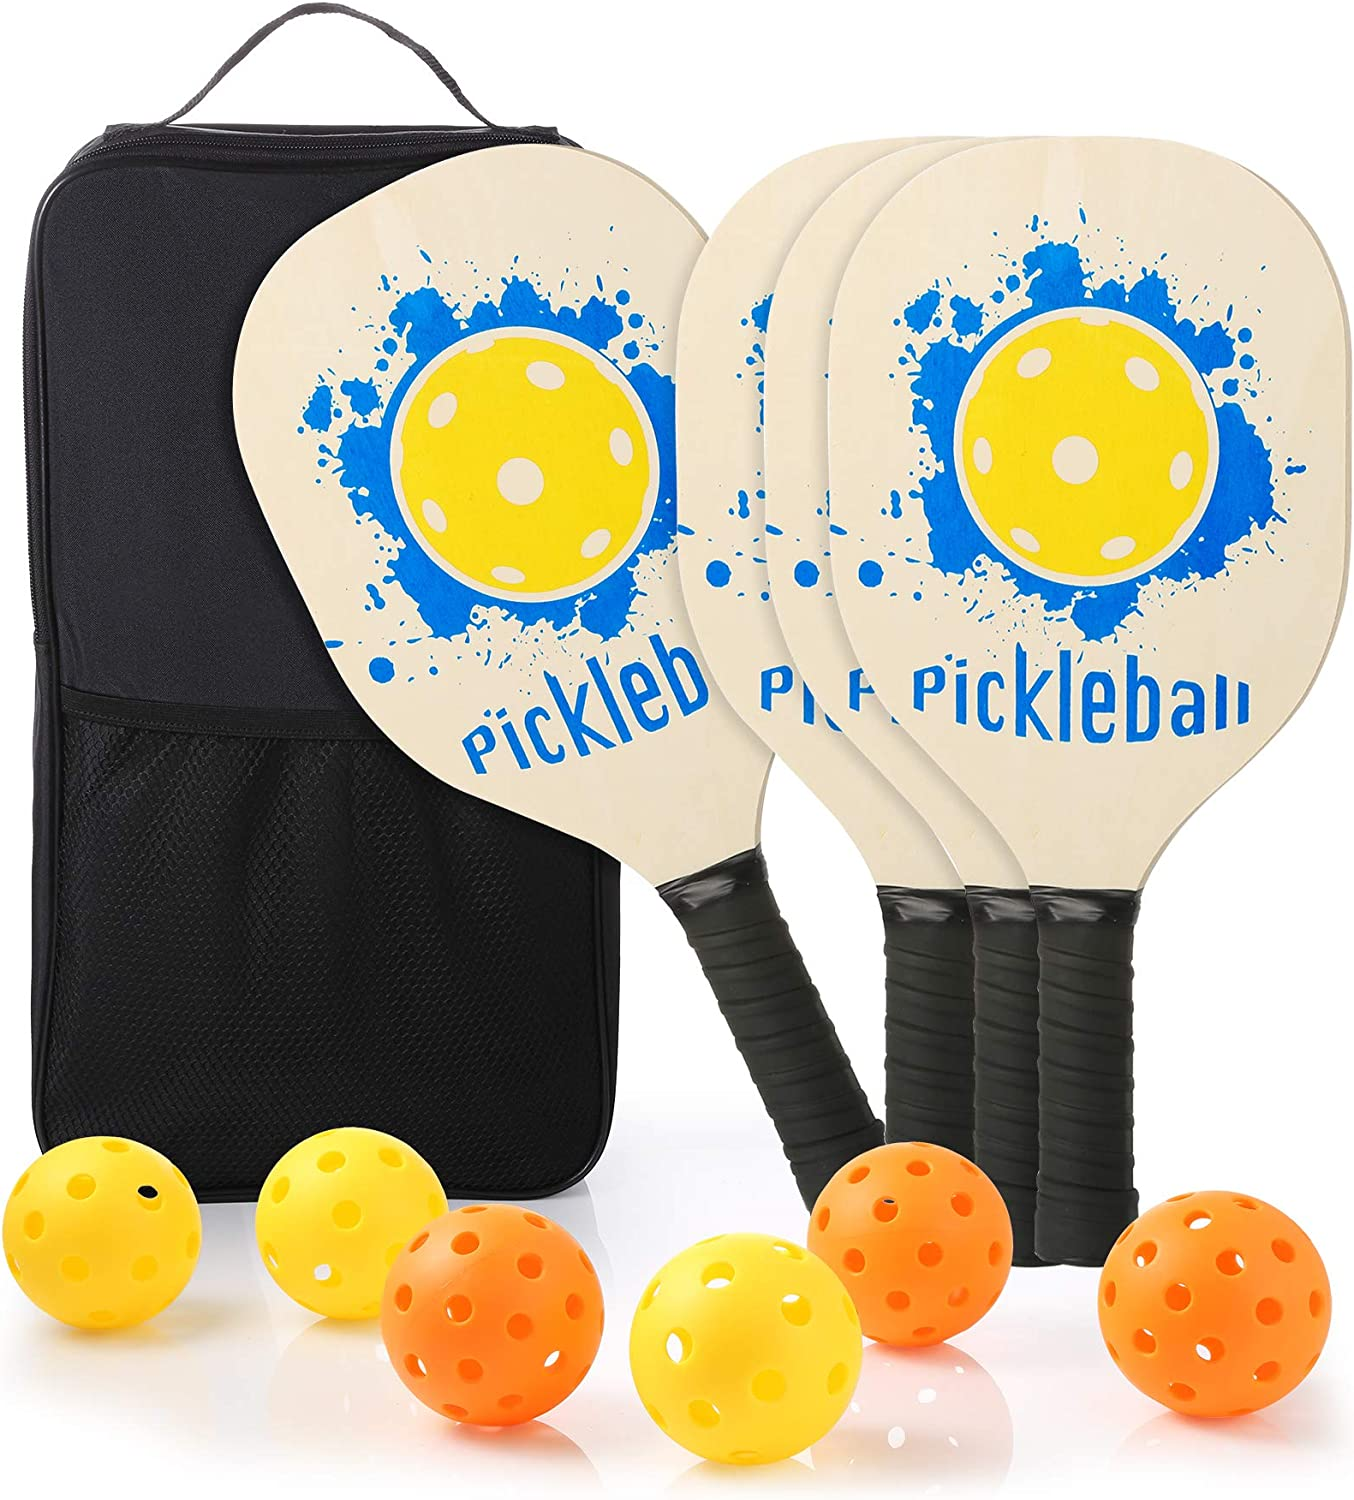 Ackitry 4 Wood Pickleball Paddles with 1 Carry Backpack and 3 In